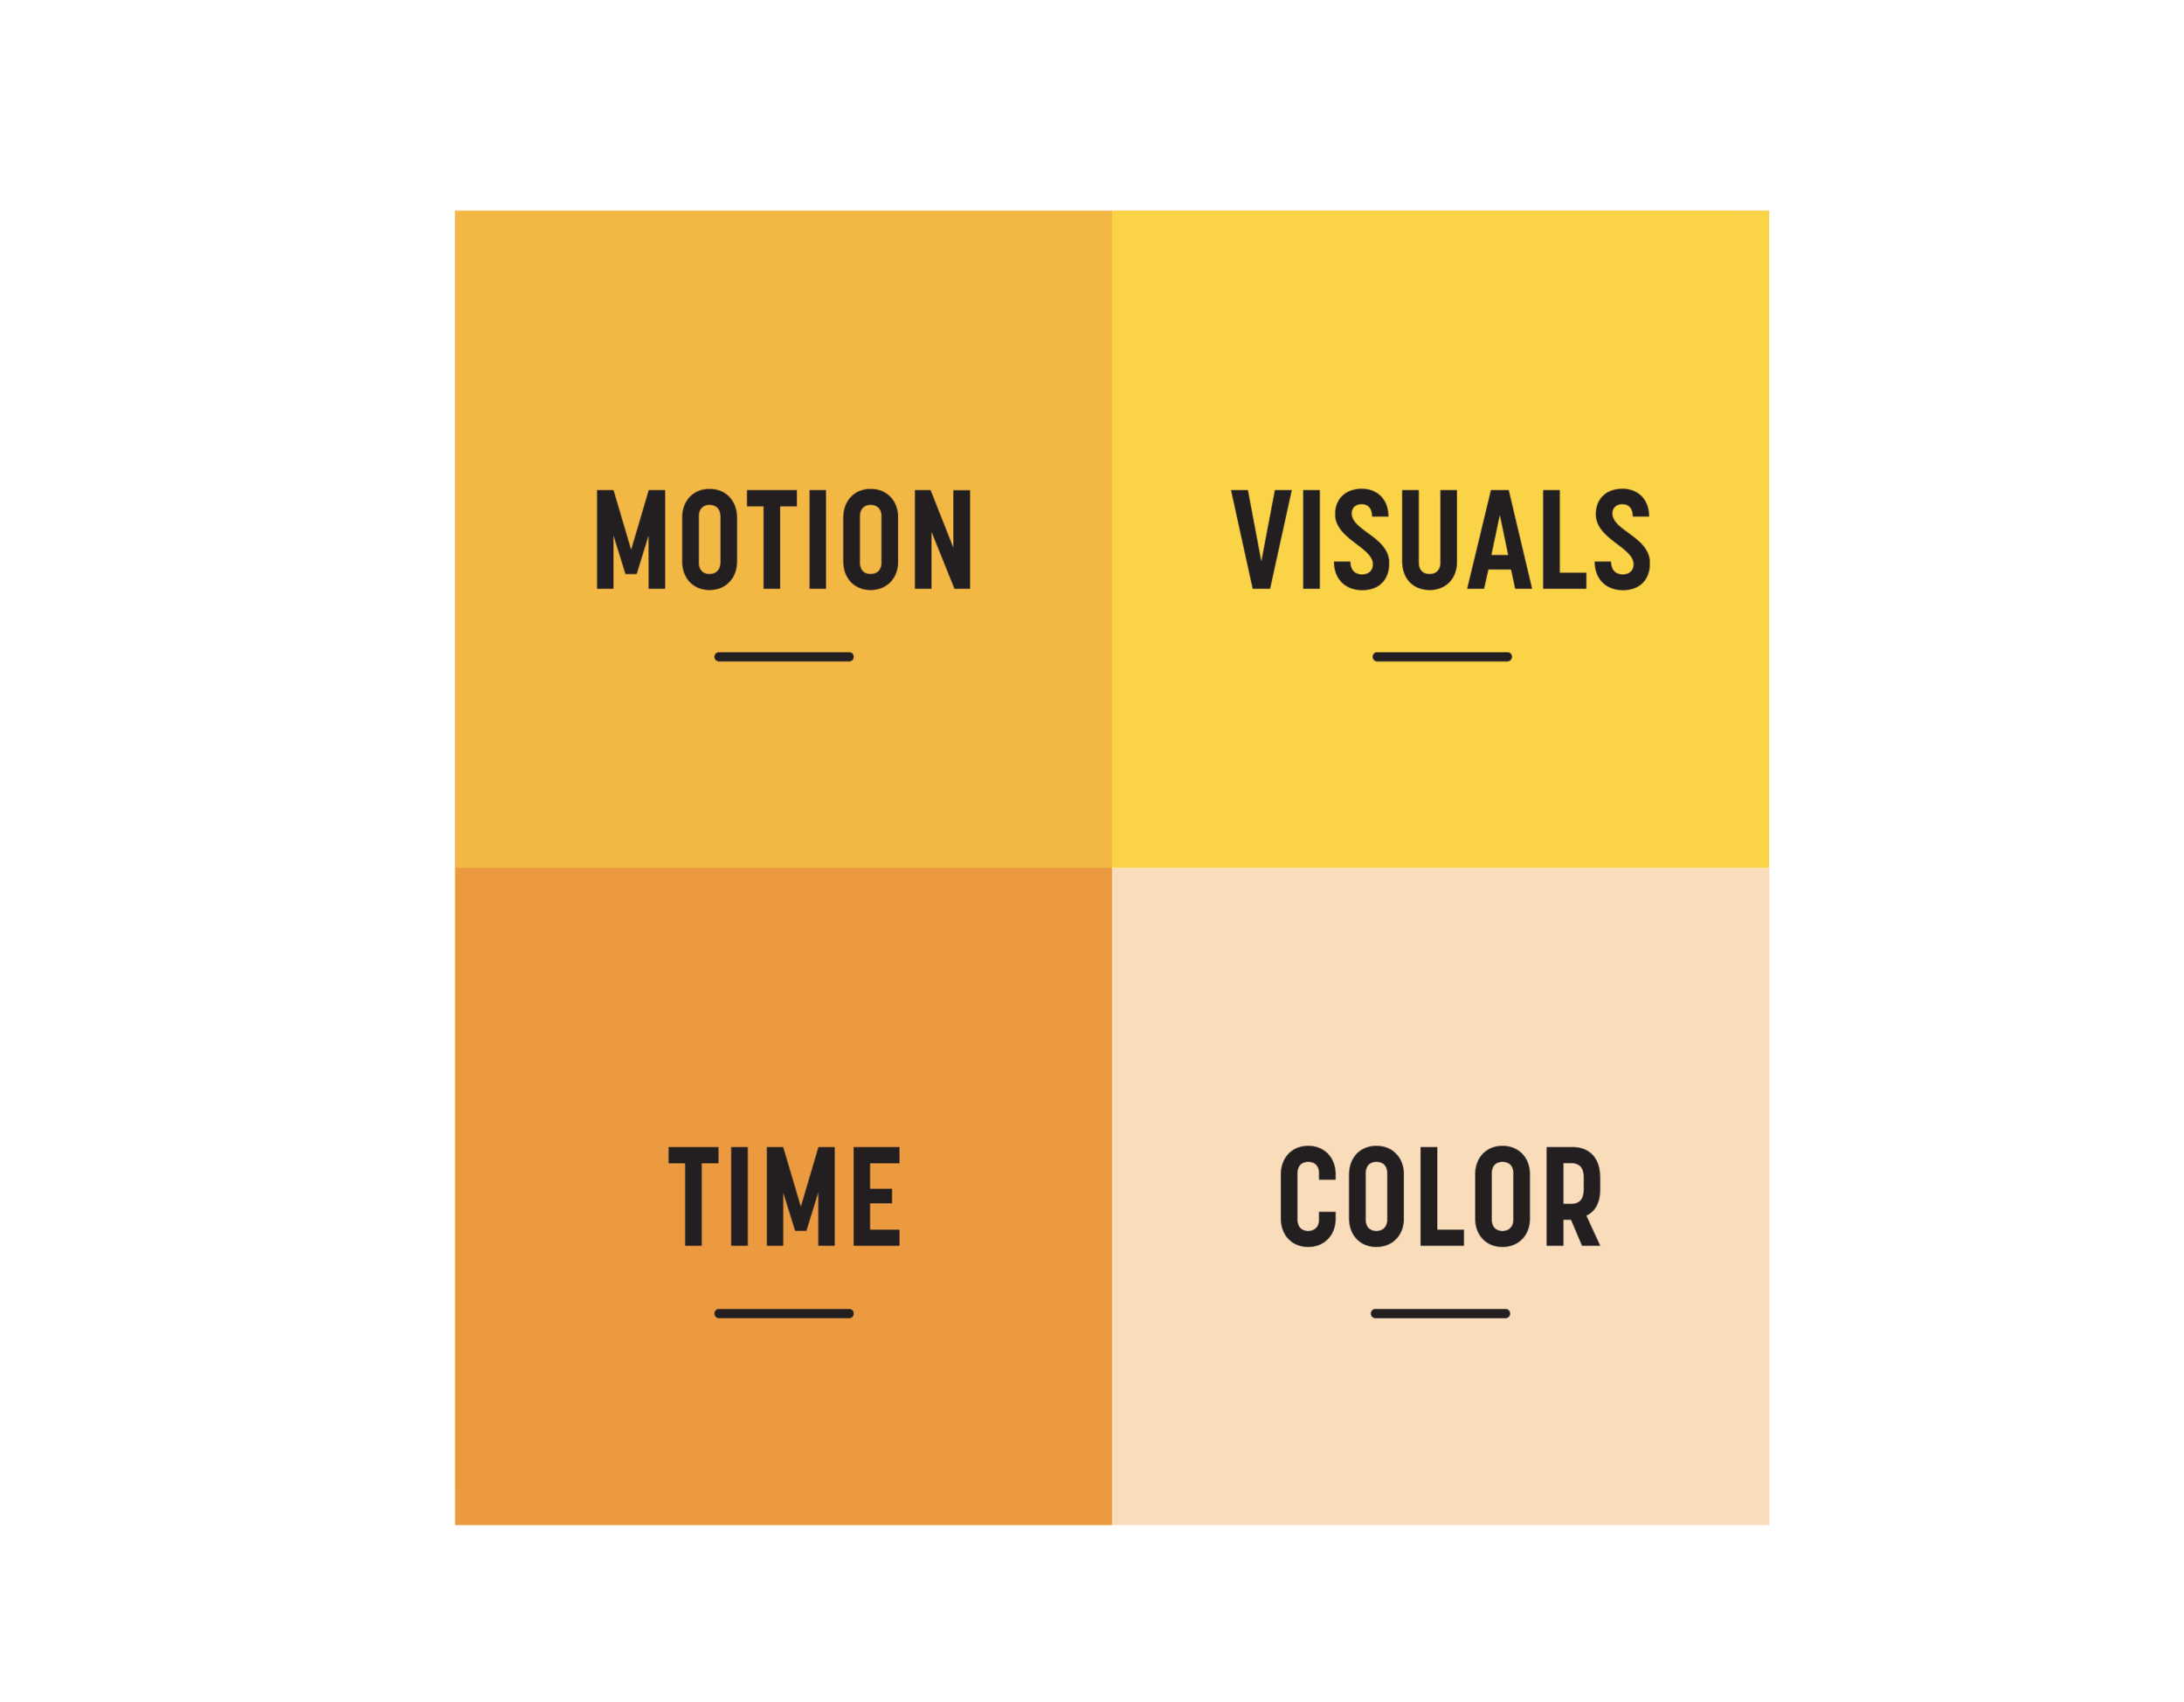 Learn the 4 key ingredients to visual Engagement - 46.1% of people say a company's design is the number one criterion for discerning their credibility. Visuals are so vital, but so easy to get wrong.• Motion: Use movement appropriately• Visuals: Multiple visuals for different viewers• Time: The proper length of time to display visuals• Color: Use color to evoke strong emotions